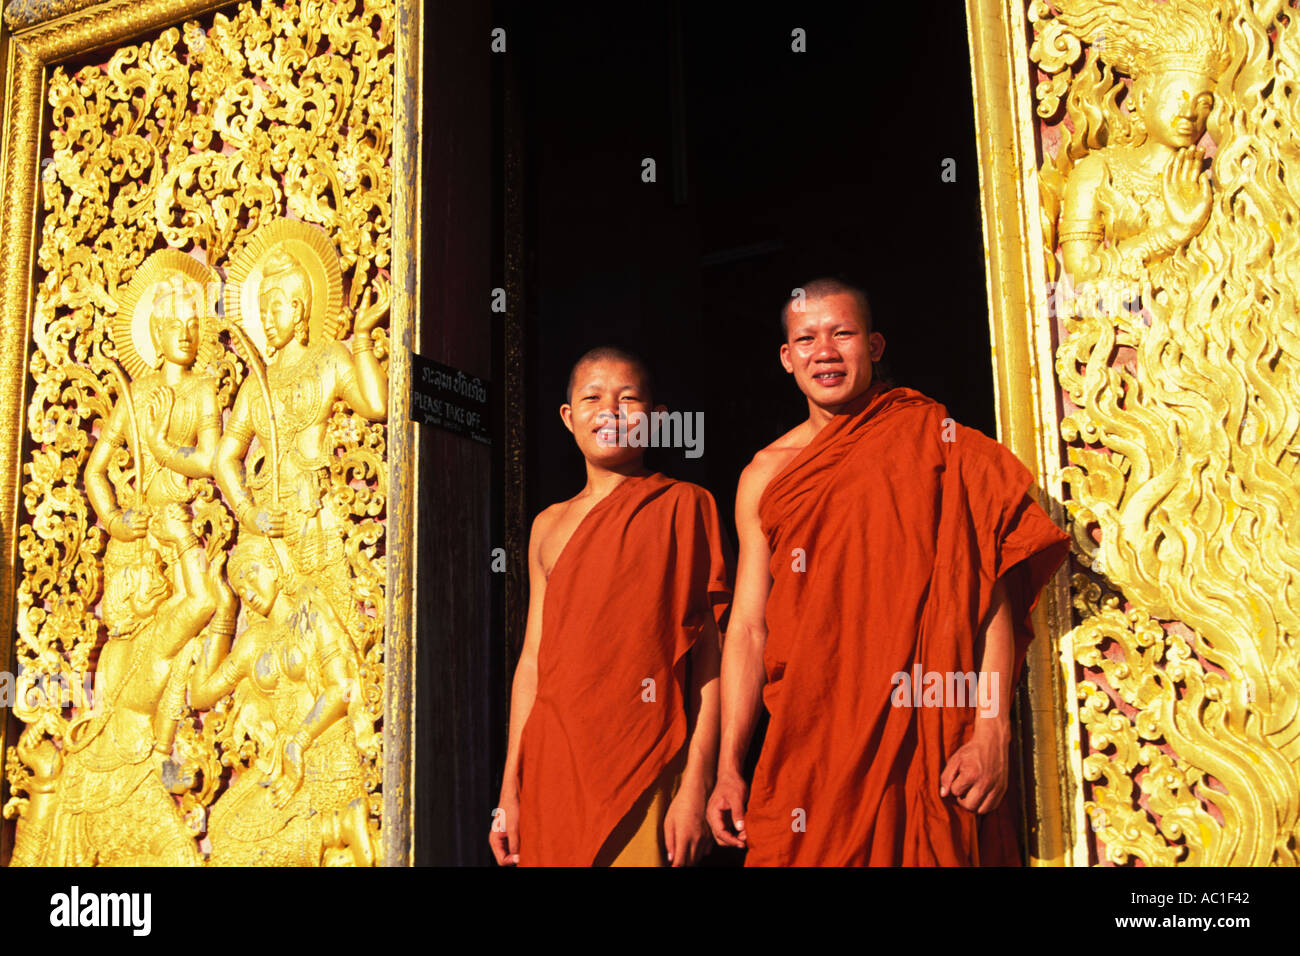 Laos, Luang Prabang, Monks, Wat Xieng Thong - Stock Image